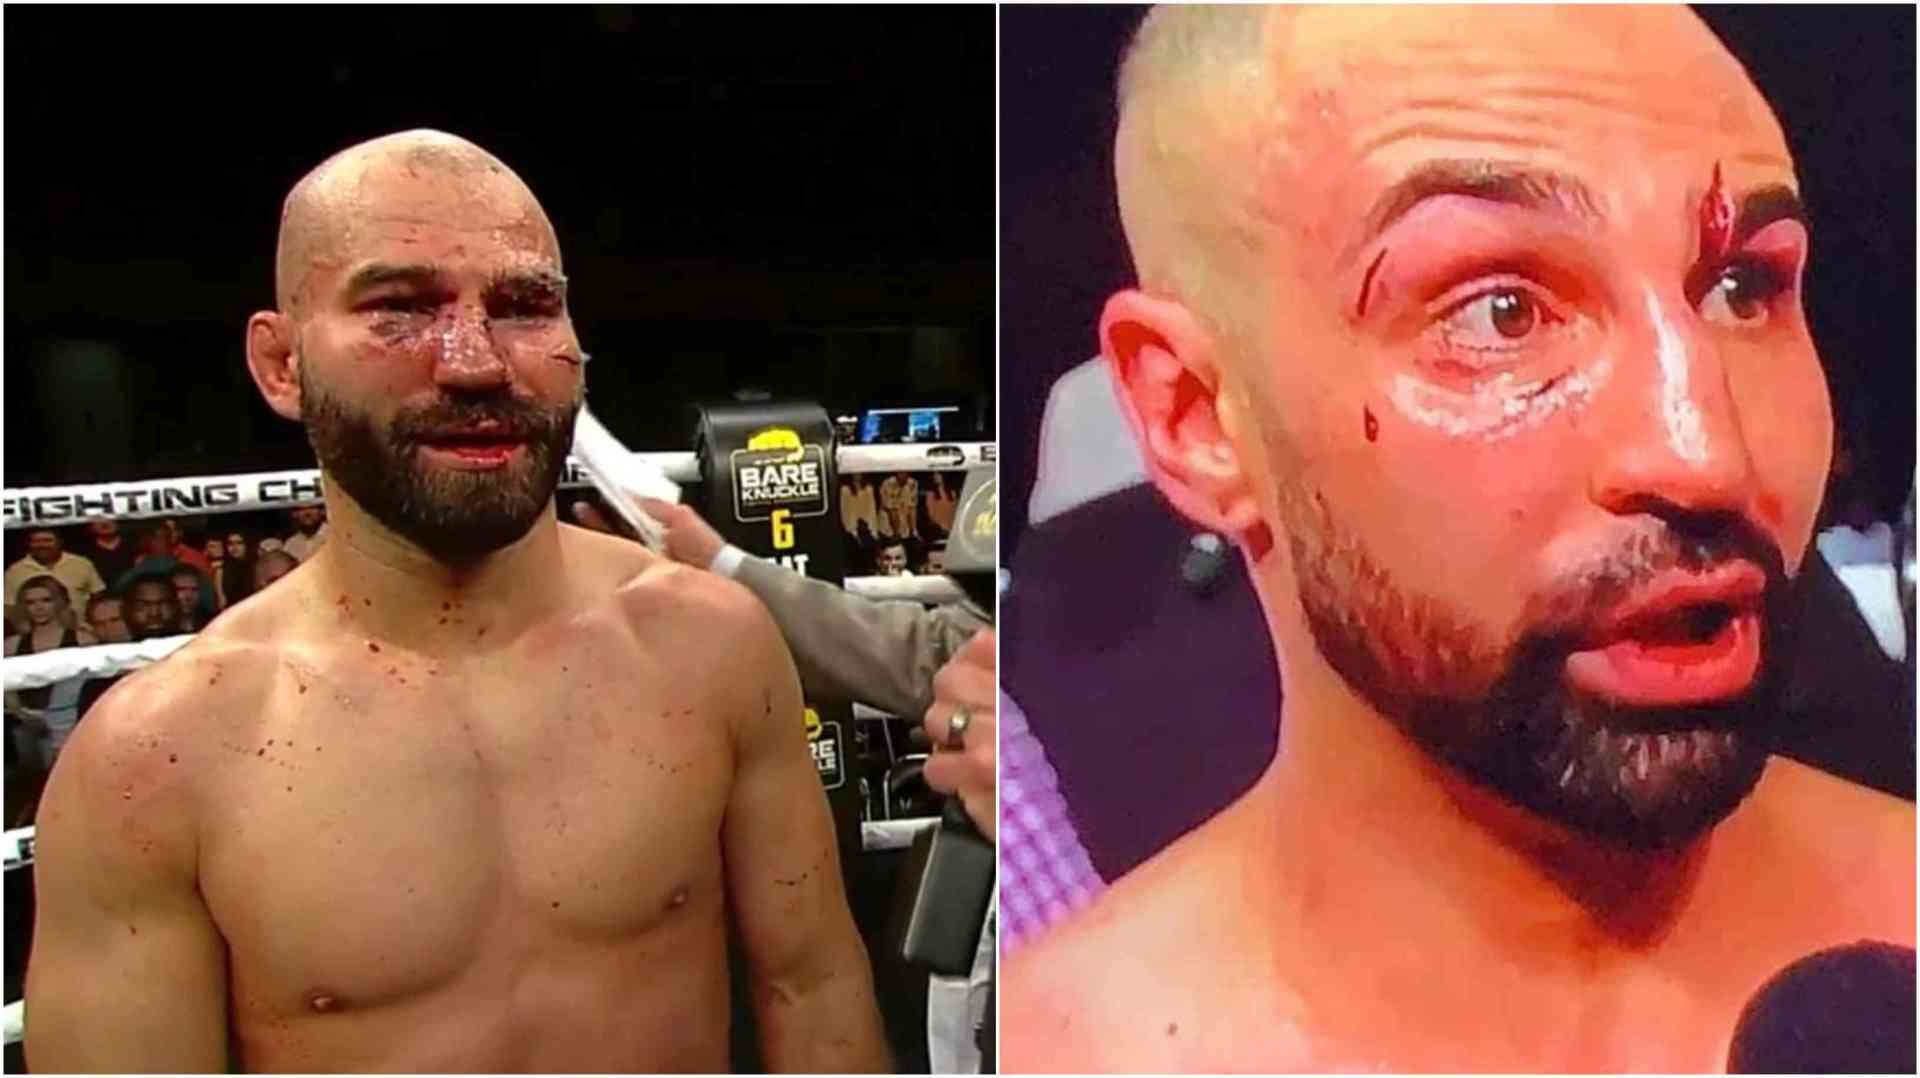 Here's how the internet reacted to Paulie Malignaggi losing to Artem Lobov at BKFC 6 - Artem